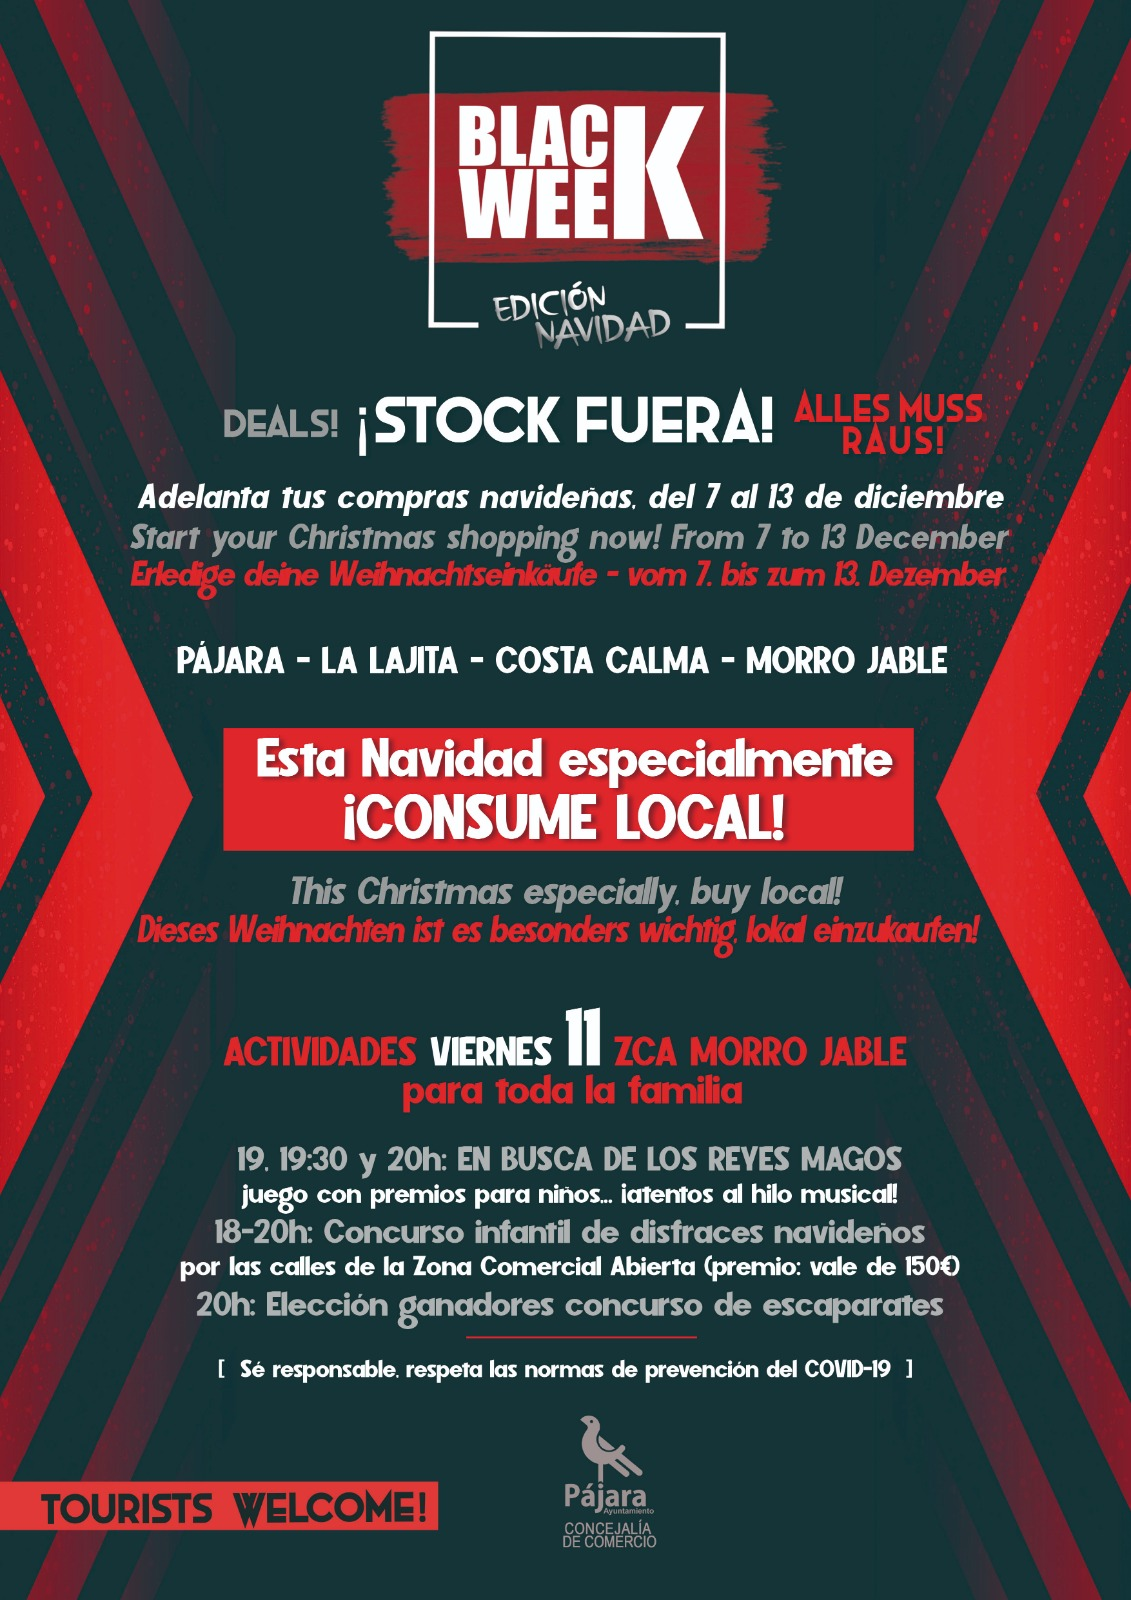 Pájara celebra la Black Week para promover el consumo local estas fiestas